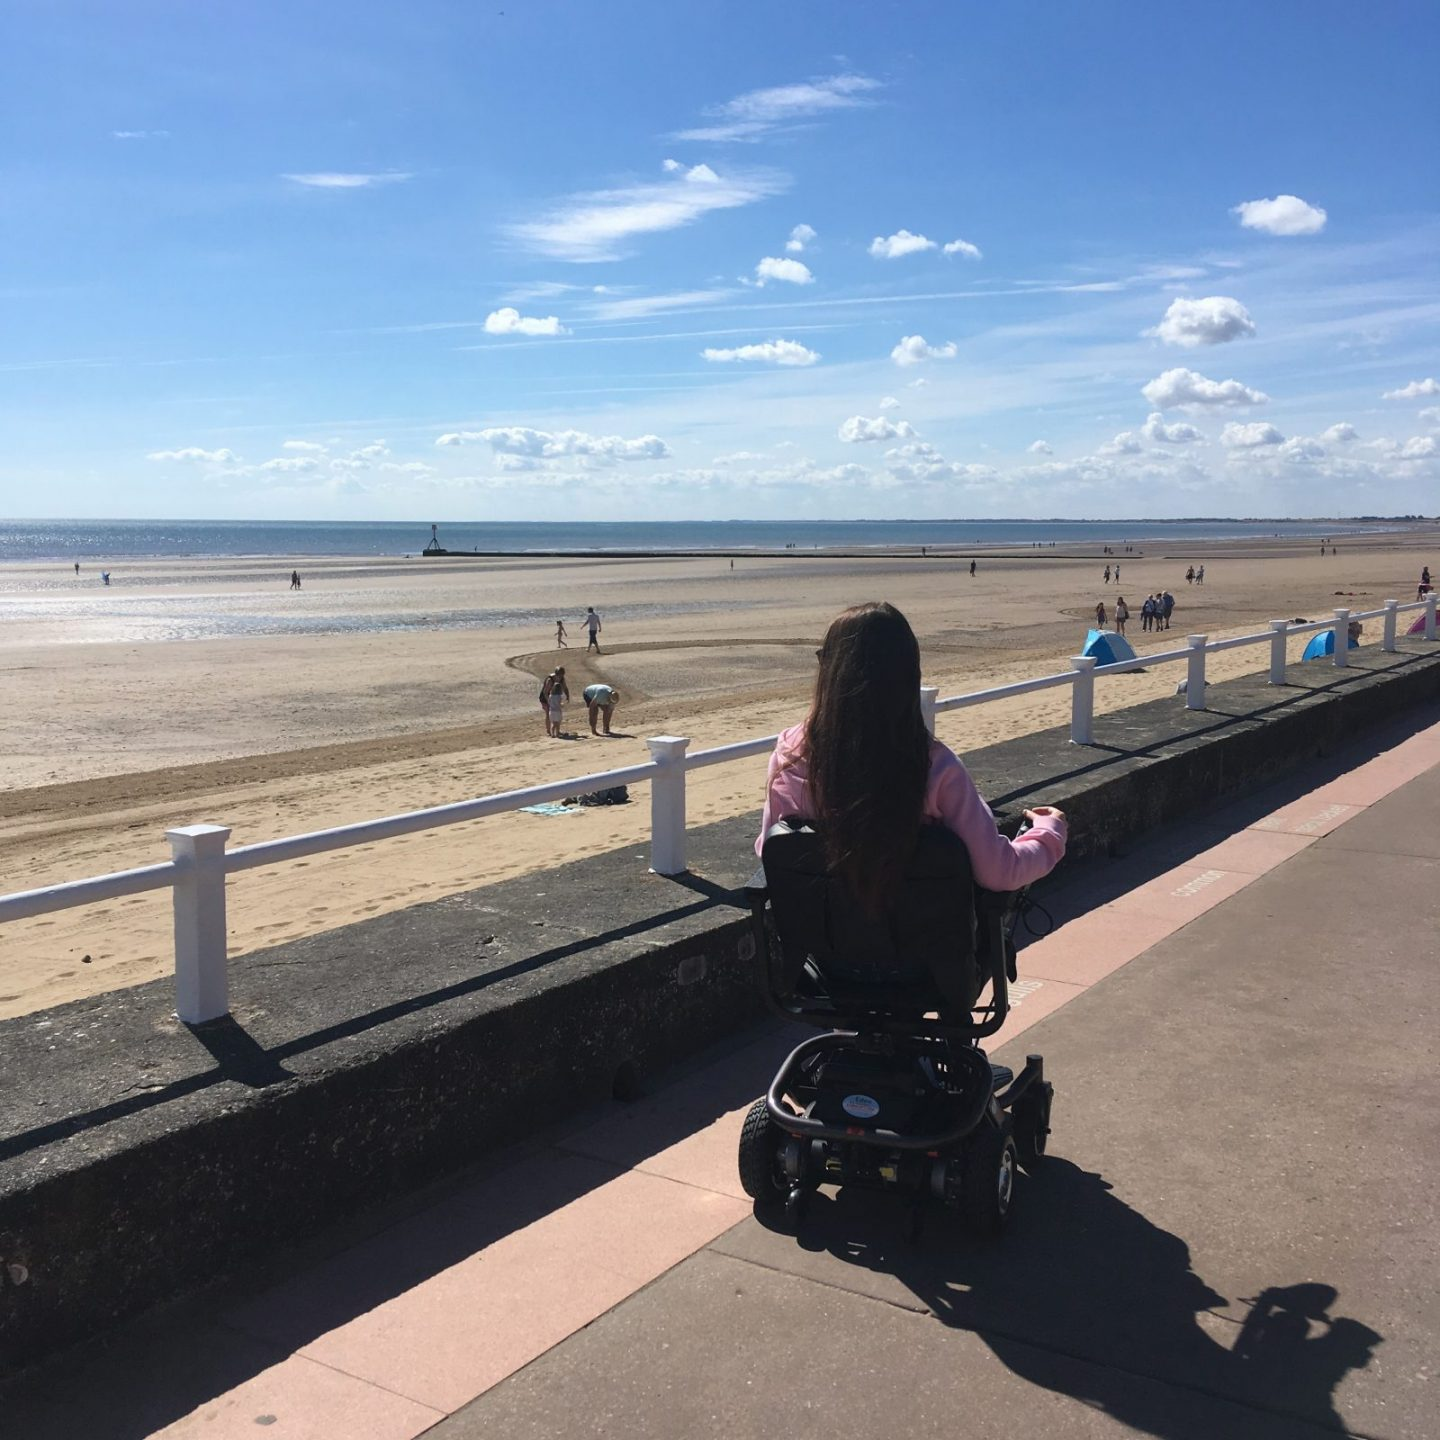 pippa in powerchair with back to camera, wheeling along path next to beach